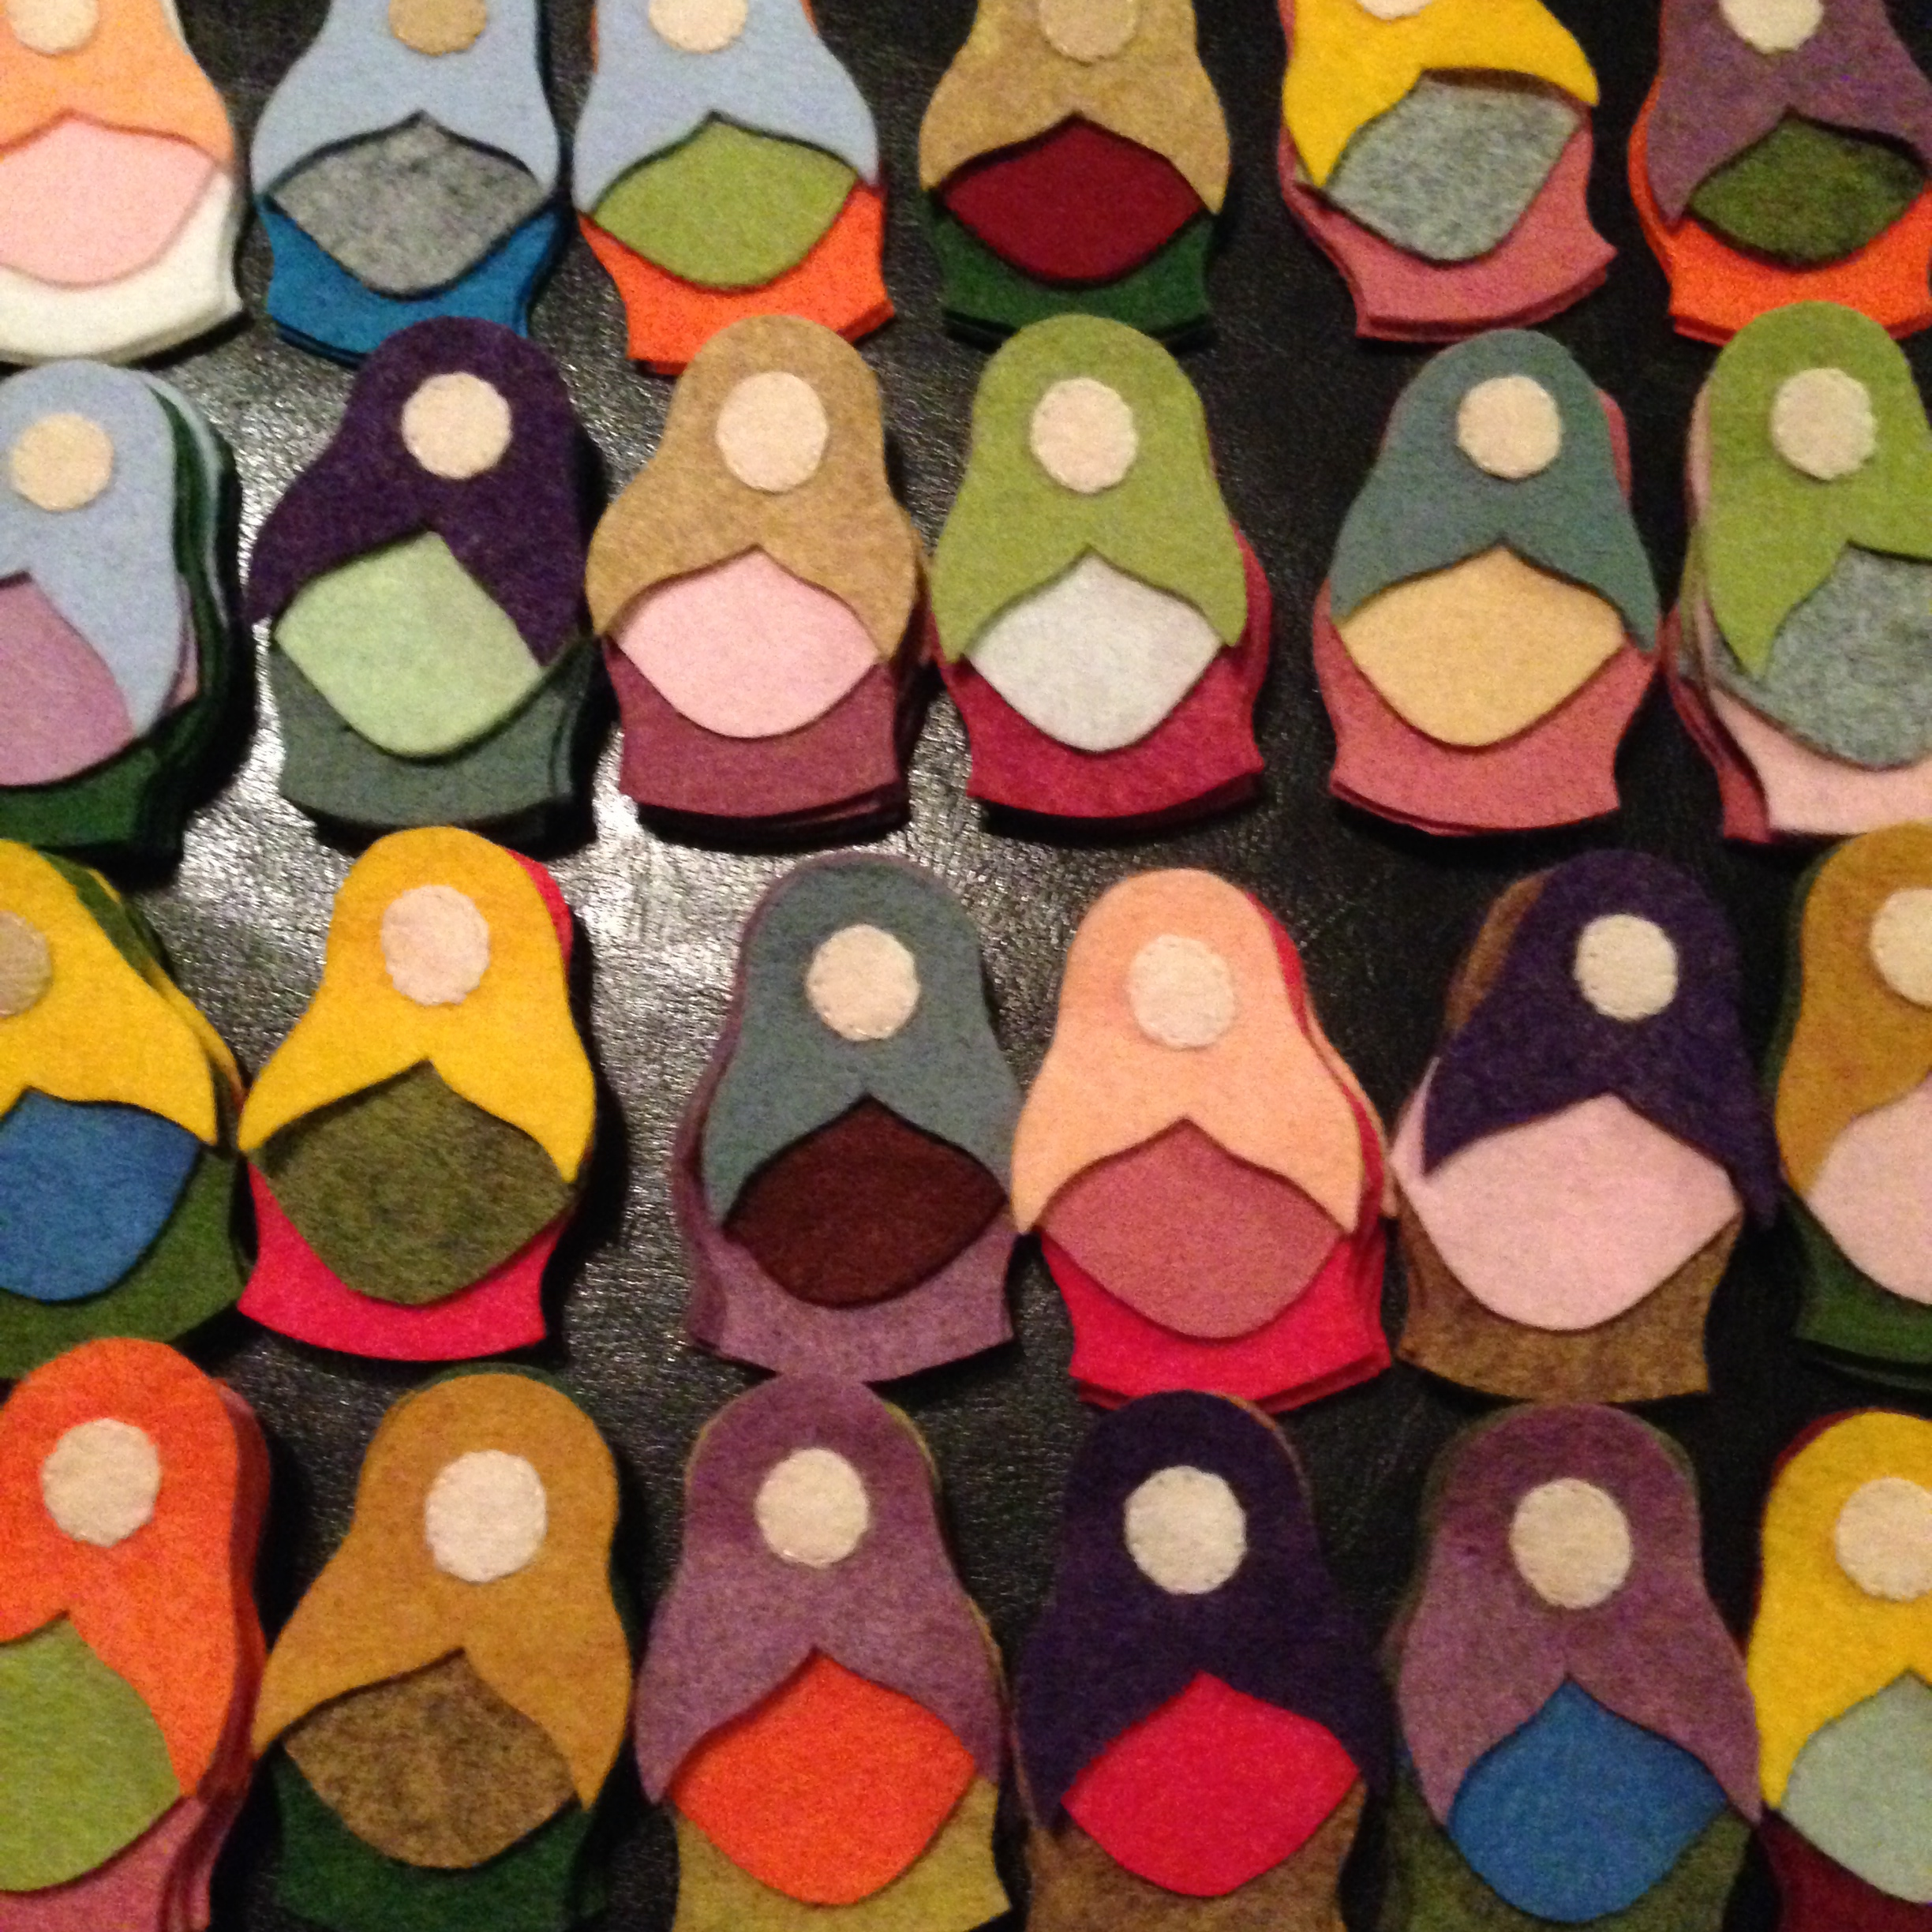 Faceless dollies (a bit creepy actually!) laid out for colour matching.